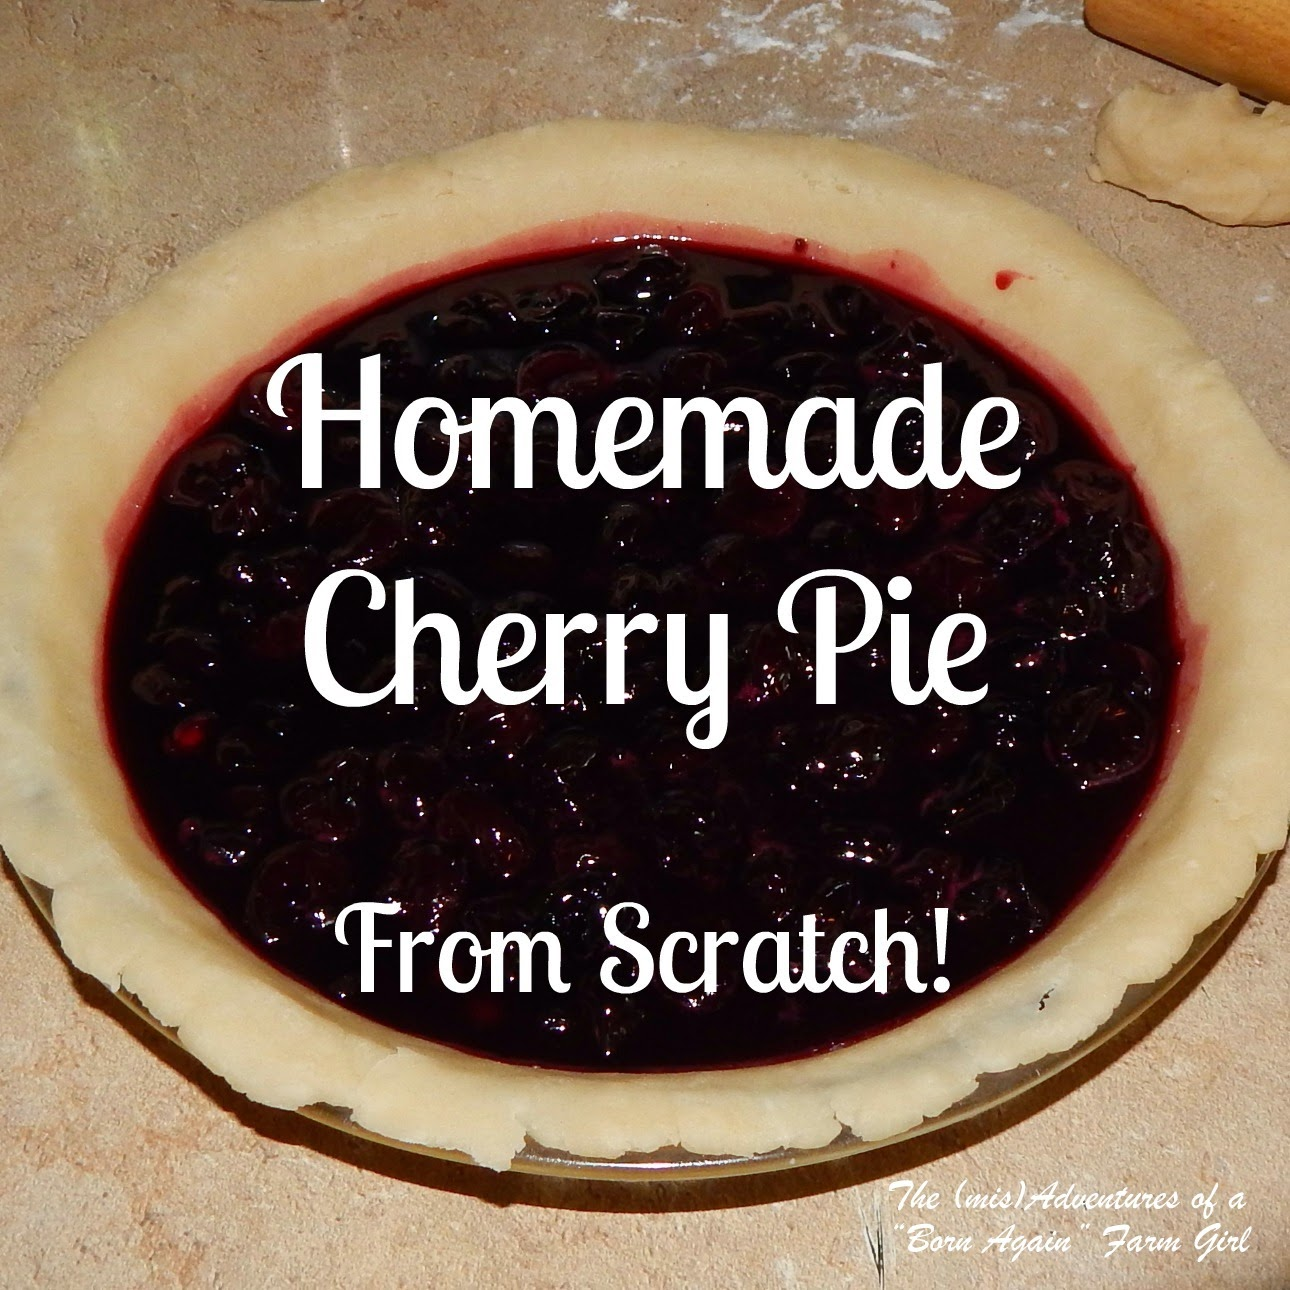 Homemade Cherry Pie From Scratch